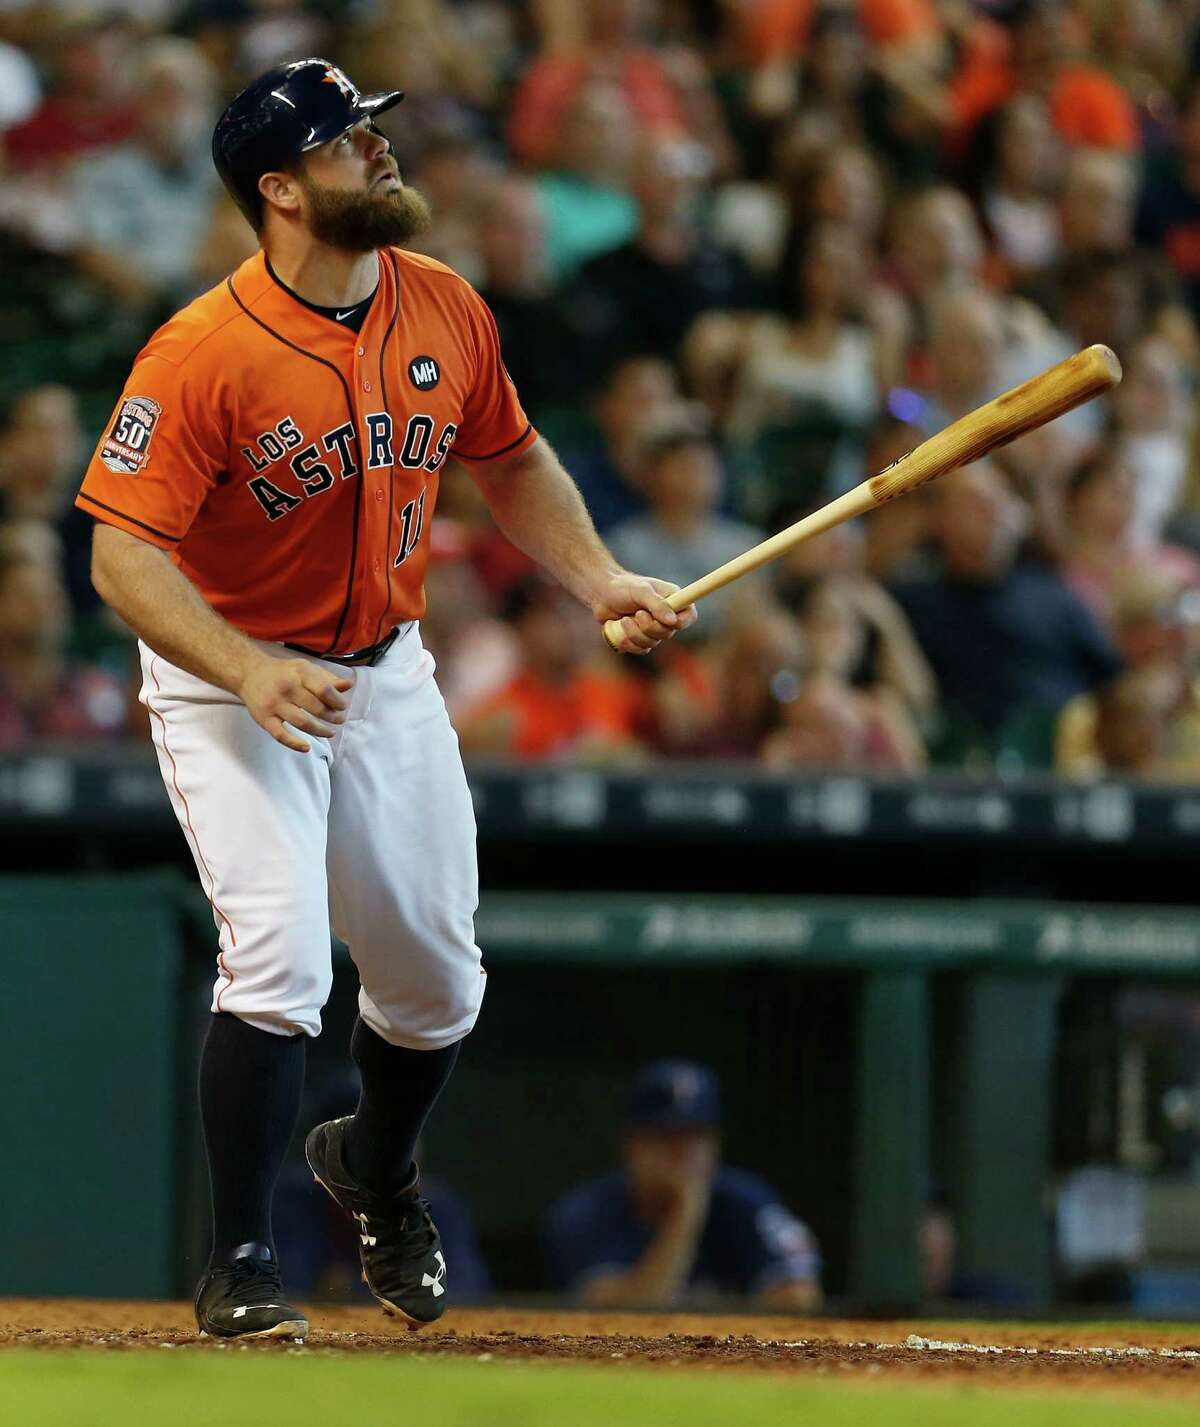 Houston Astros designated hitter Evan Gattis (11) watches sacrifice fly during the 7th inning of an MLB game at Minute Maid Park on Saturday, Sept. 26, 2015. ( Karen Warren / Houston Chronicle )